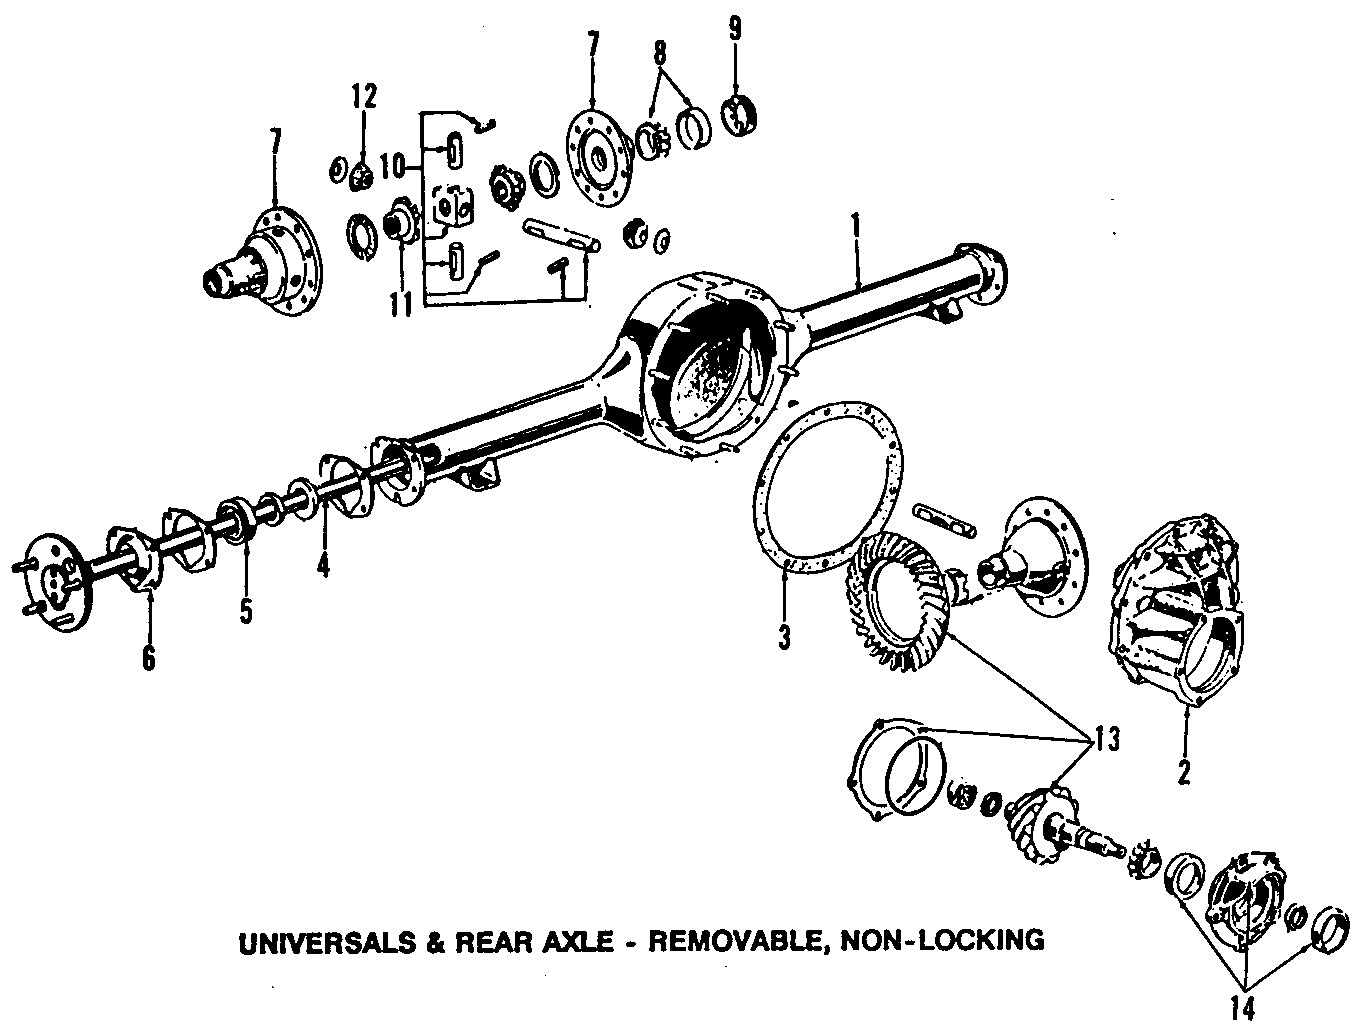 Ford Crown Victoria Rear Axle Parts Diagram. Ford. Auto